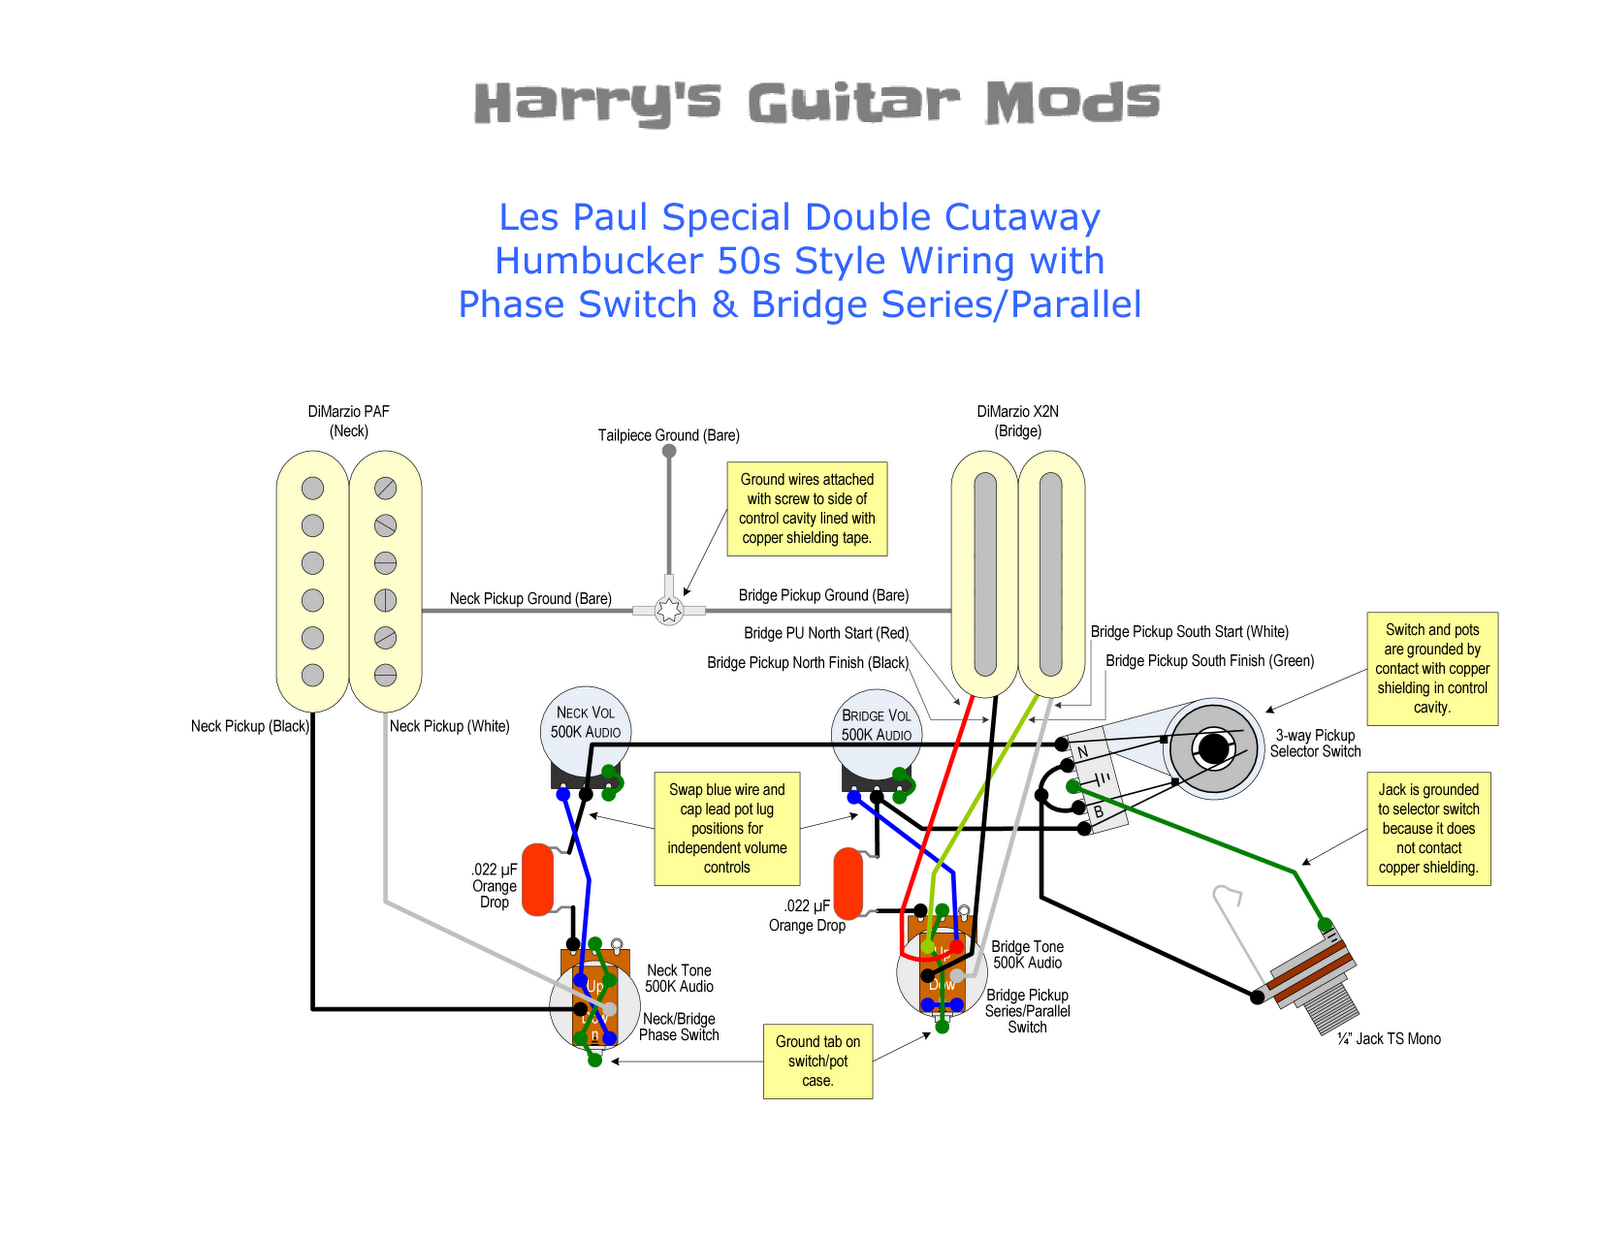 LPS+Wiring+Diagram harry's guitar mods controls wiring upgrade push pull switch wiring diagram at soozxer.org